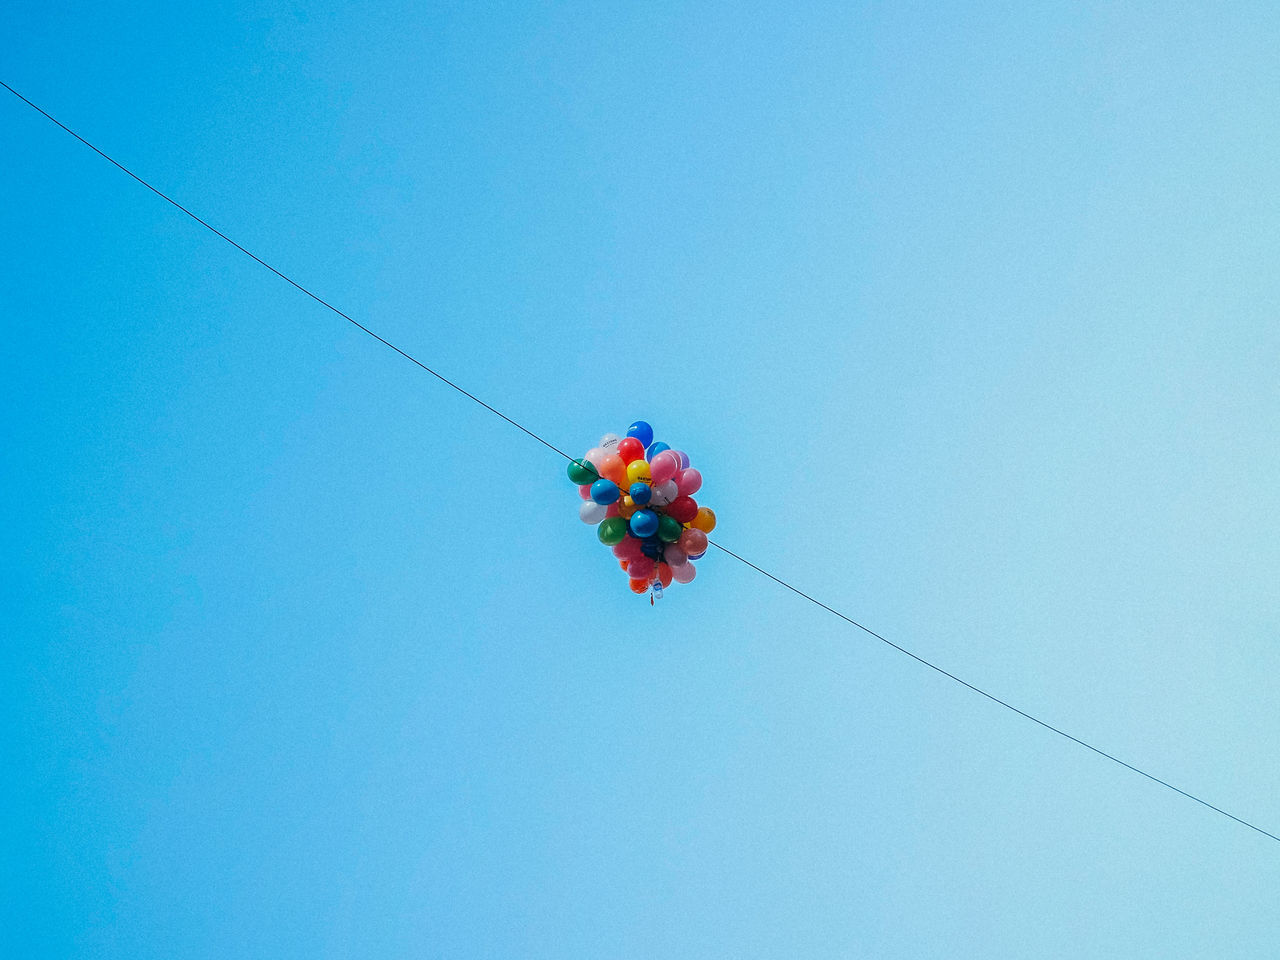 Baloons Blue Cable Clear Sky Copy Space Day Flower Flying Hanging Low Angle View Multi Colored Nature No People Outdoors Sky